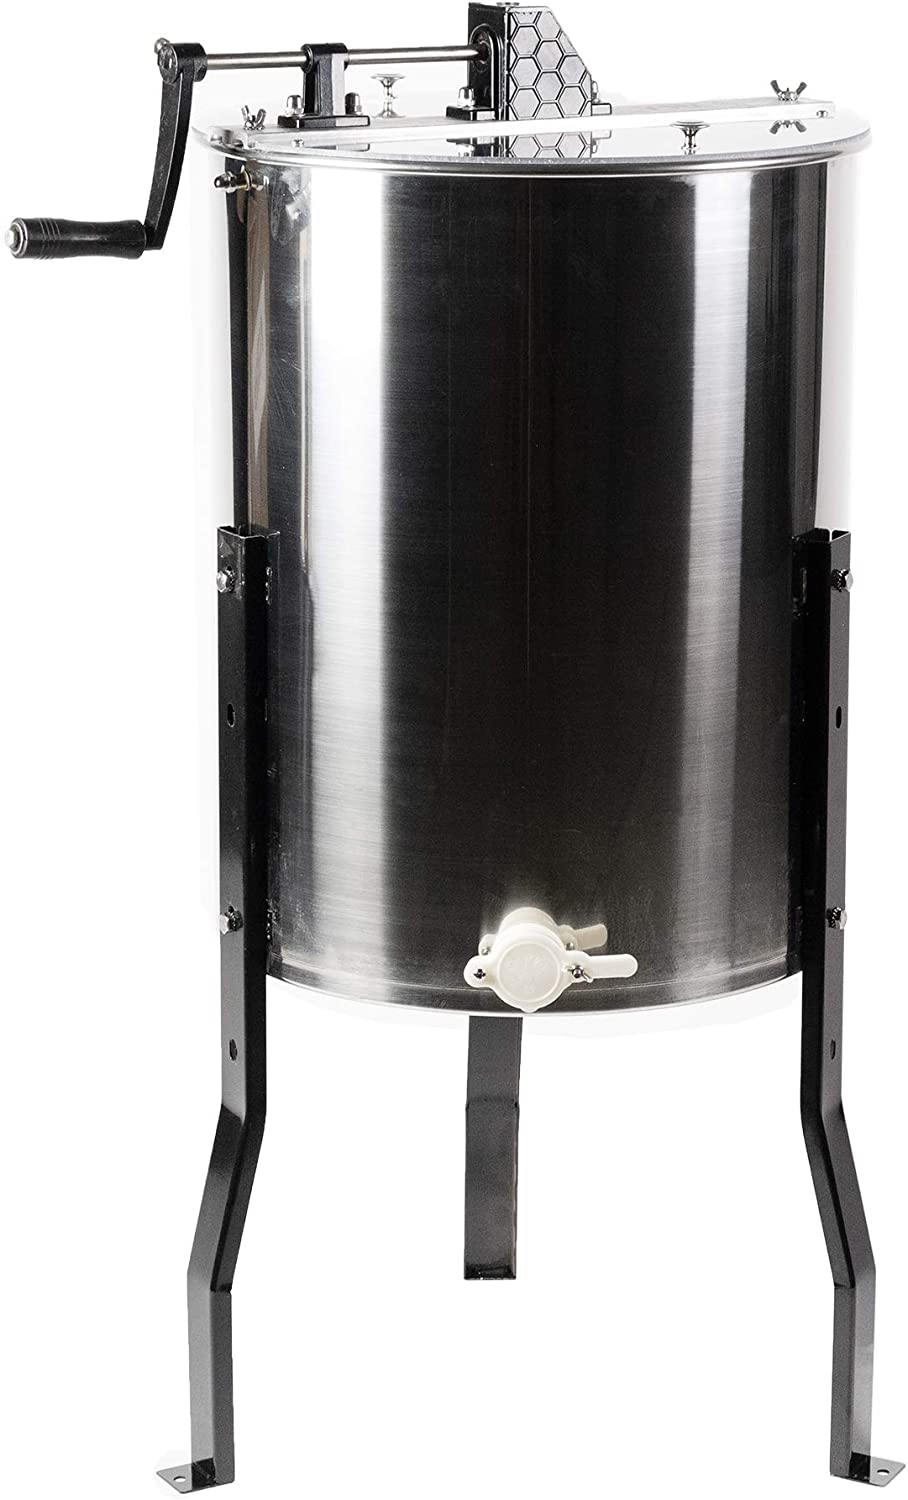 4//8 Frame Electric Honey Drum Beekeeping Honey Extractor Stainless Steel 140W